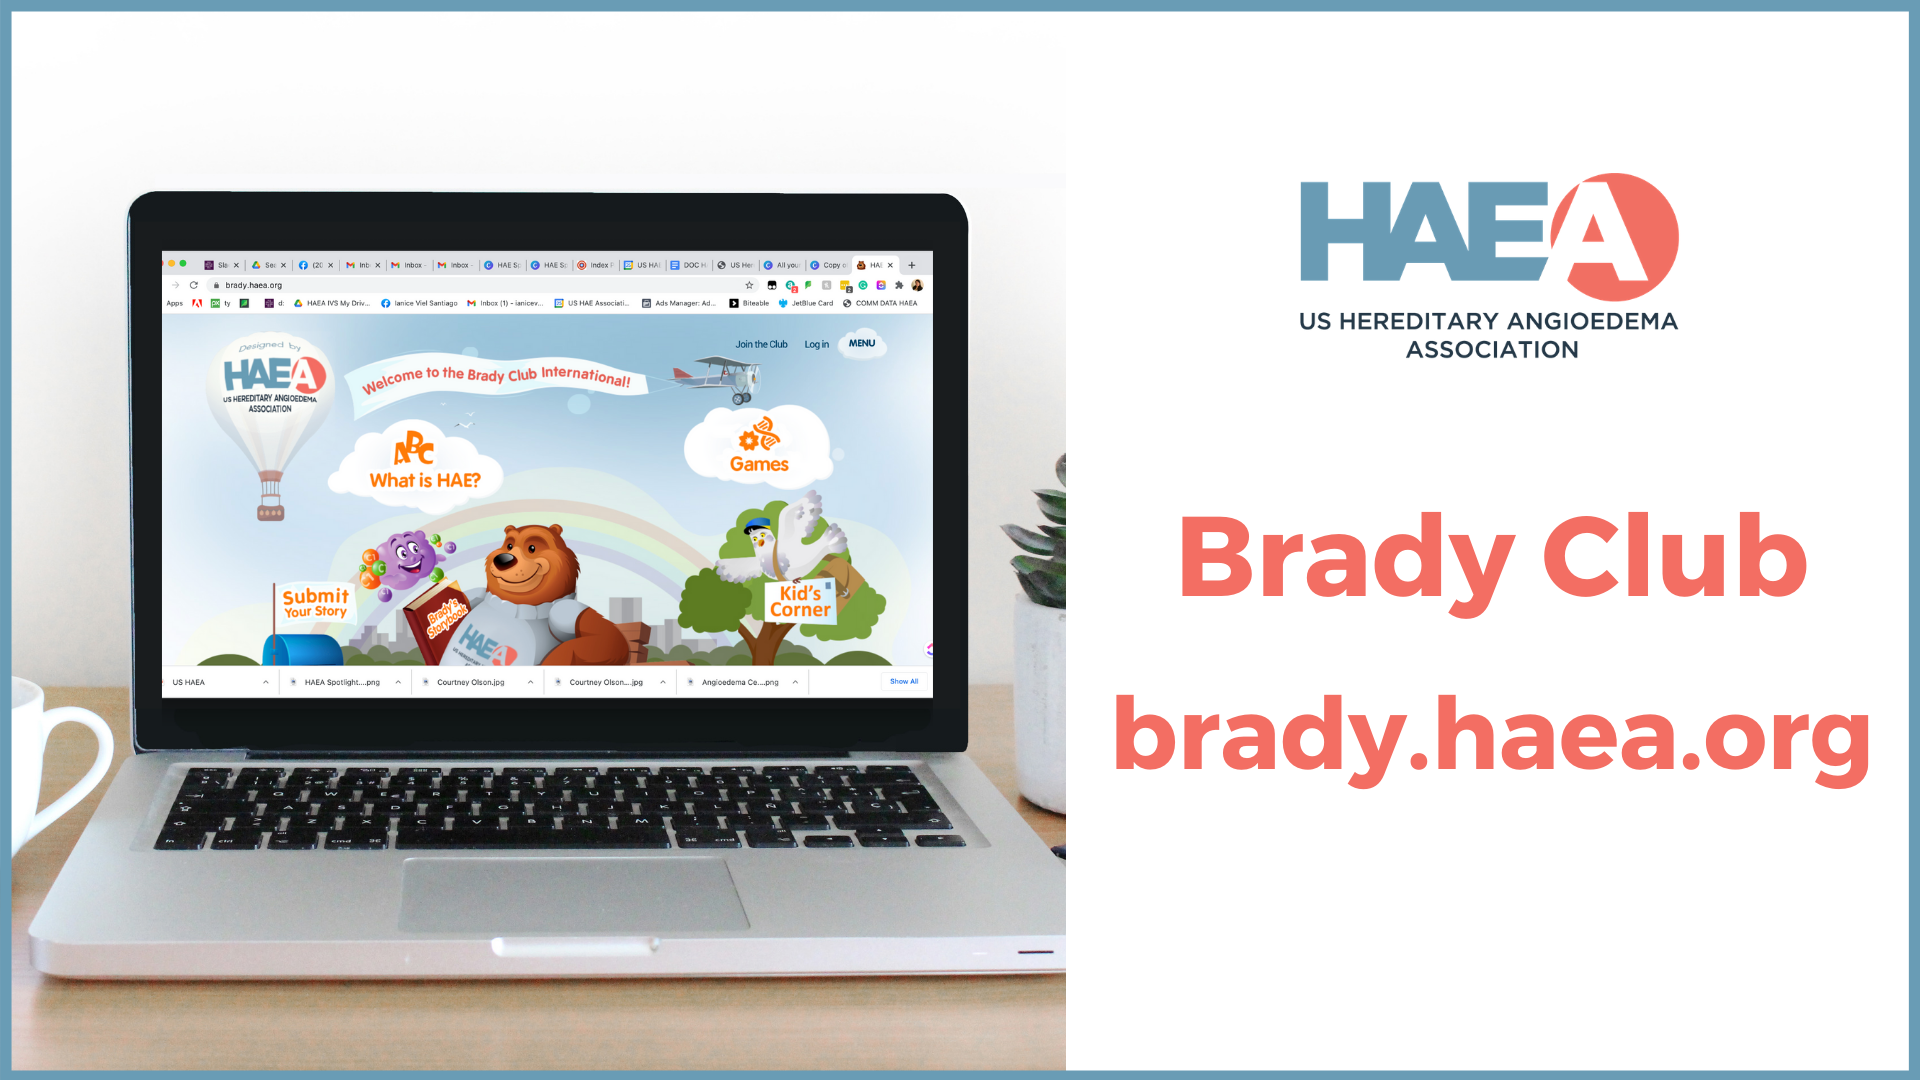 The Brady Club invites children to share their story!